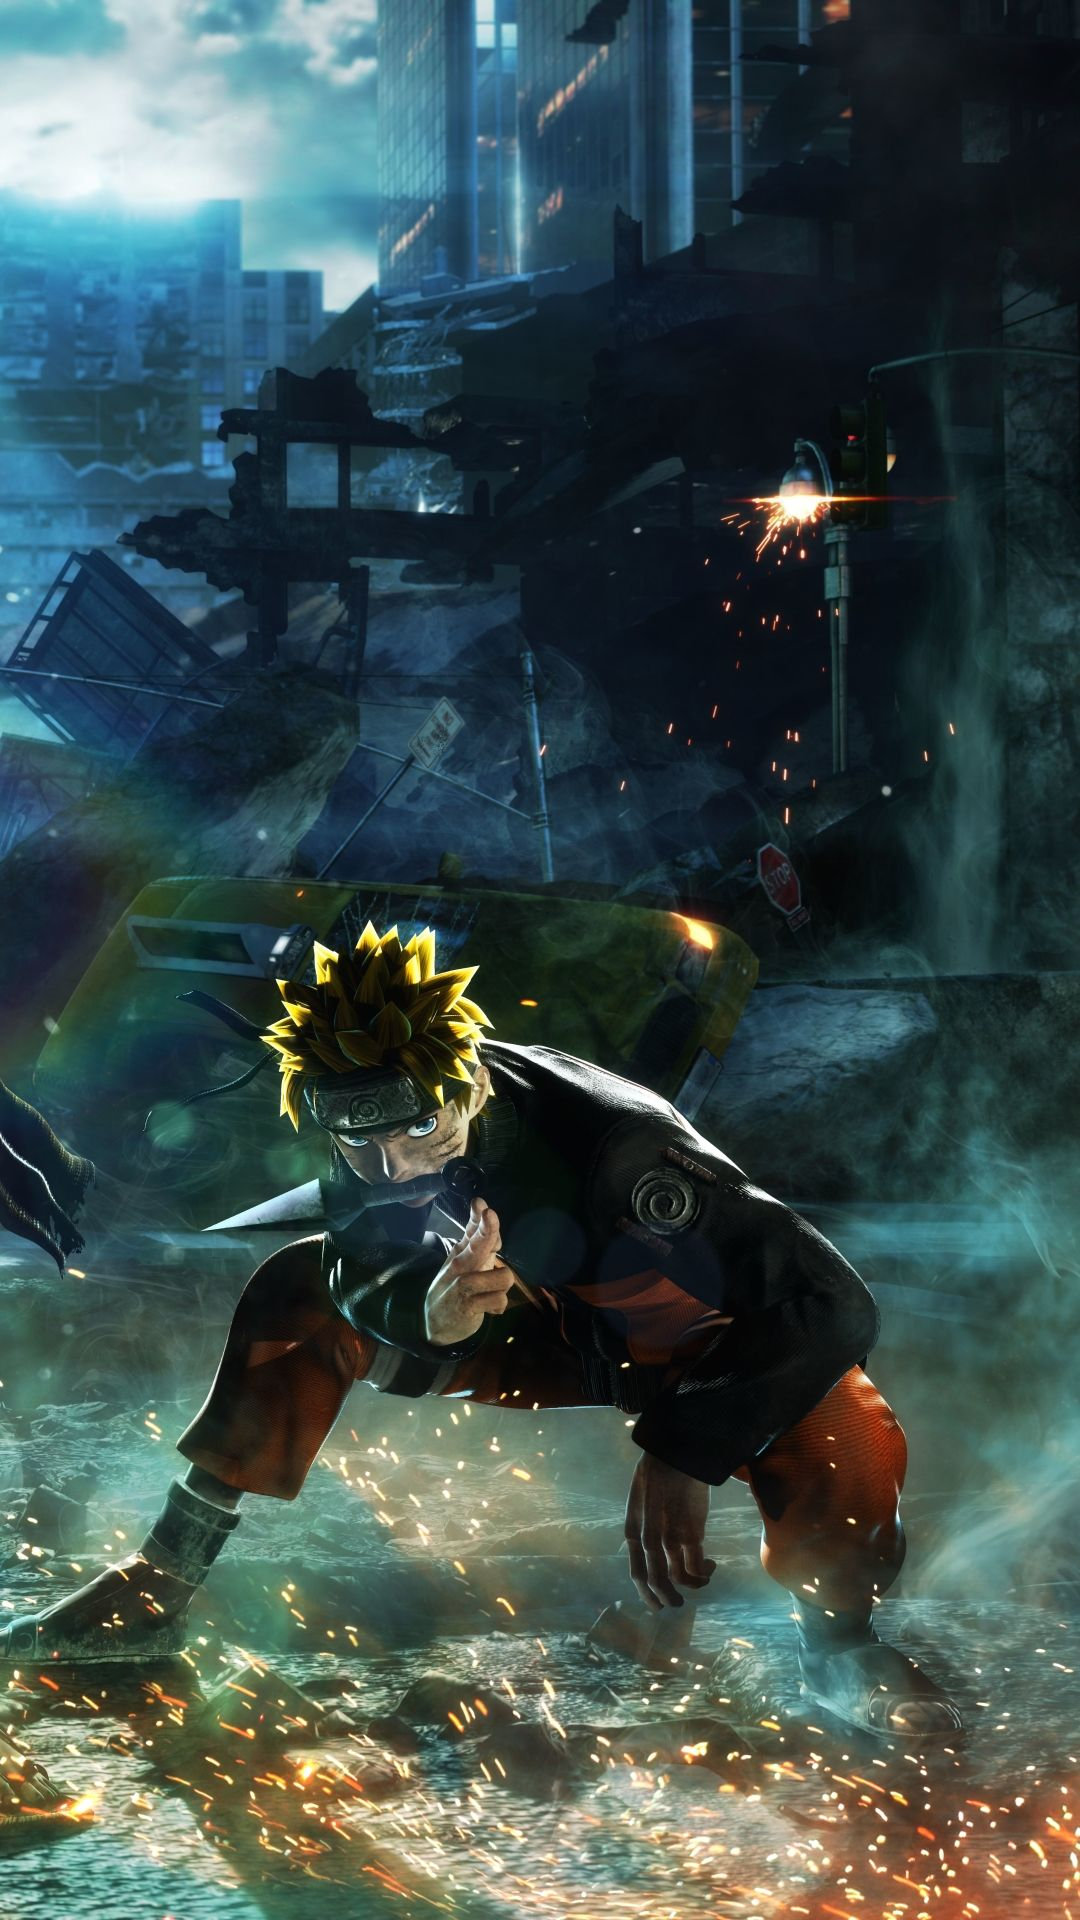 Video Game Walpaper Hd Wallpaper Android In 2020 Naruto And Sasuke Wallpaper Naruto Wallpaper Wallpaper Naruto Shippuden